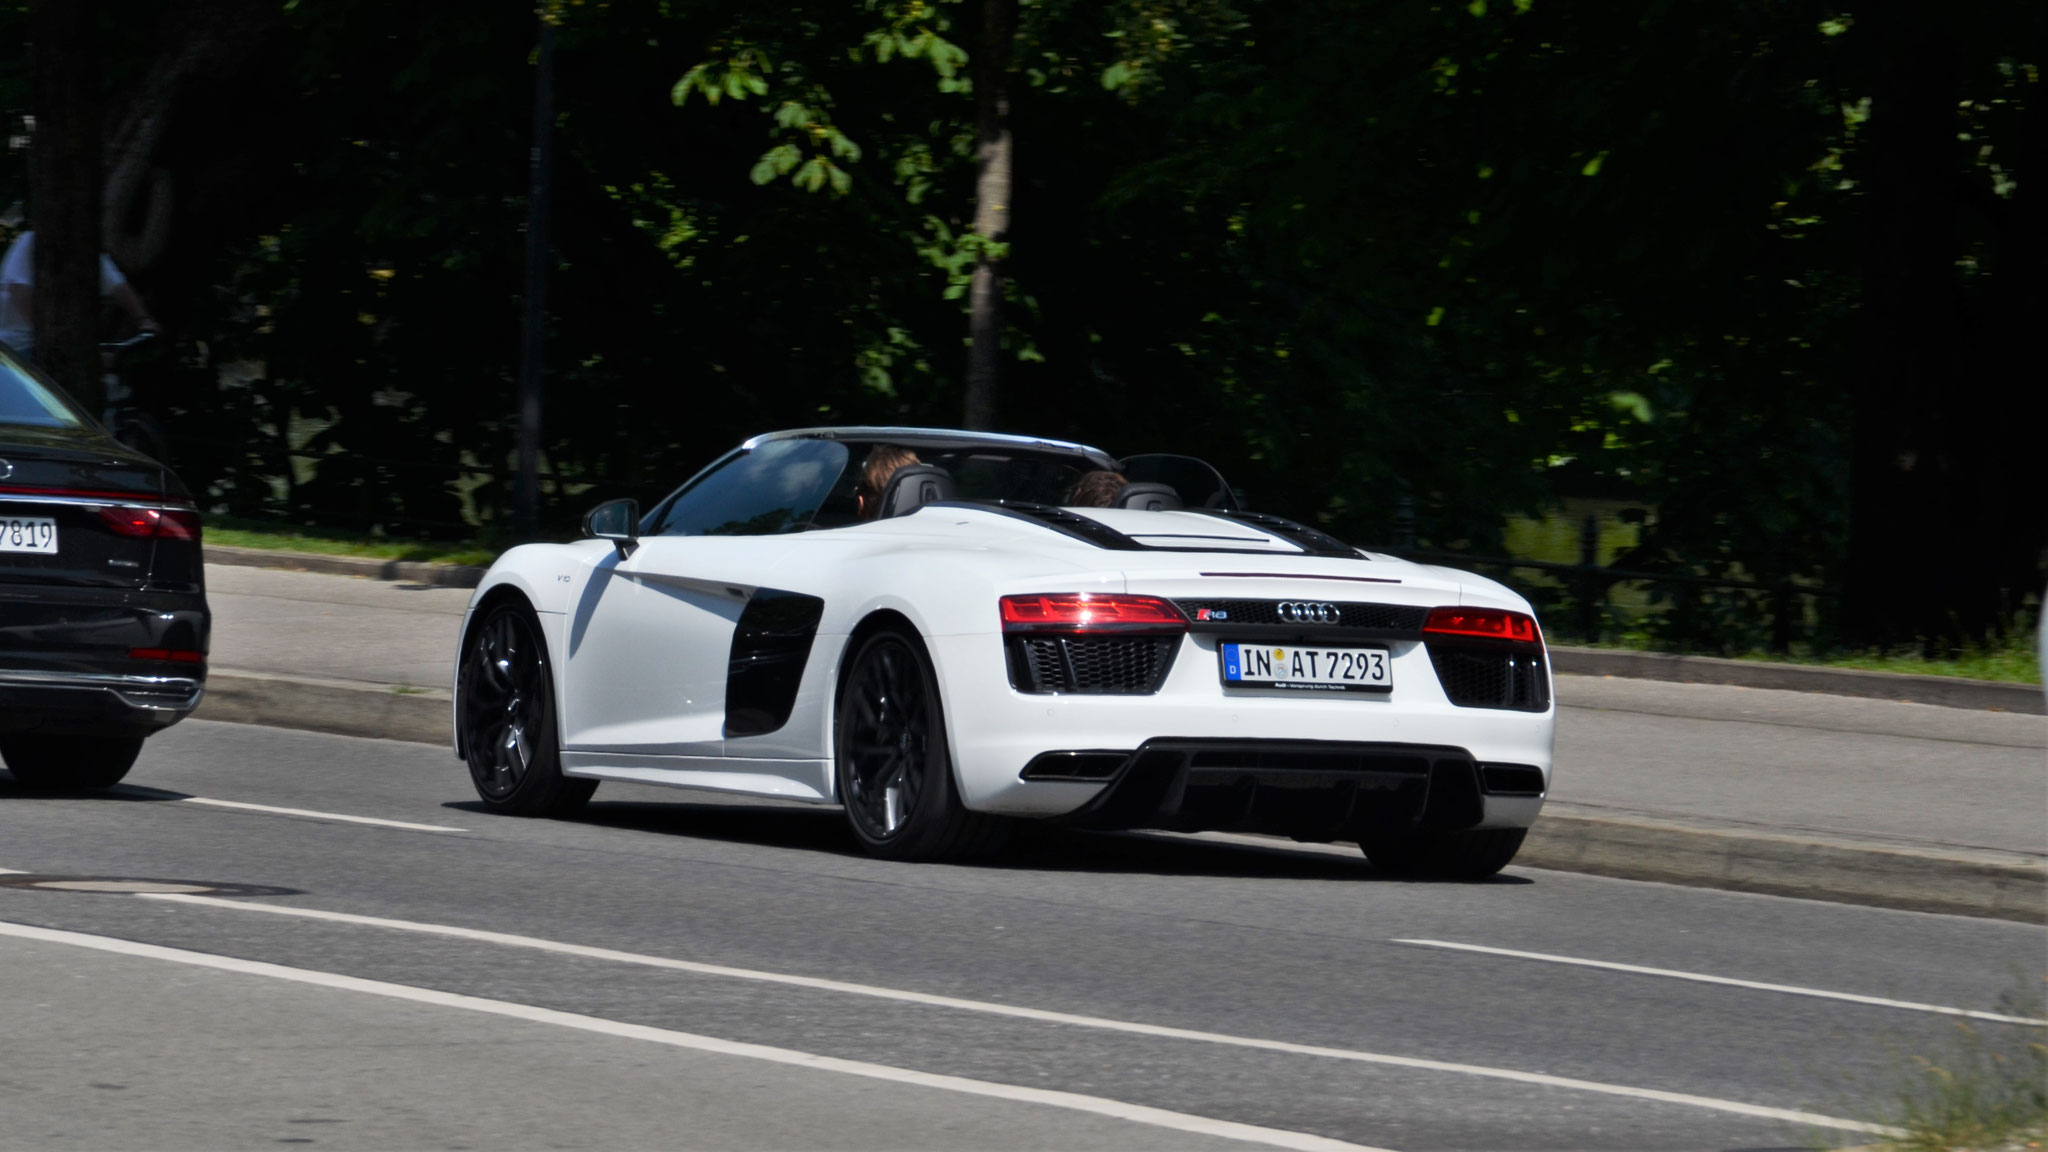 Audi R8 V10 Spyder - IN-AT-7293